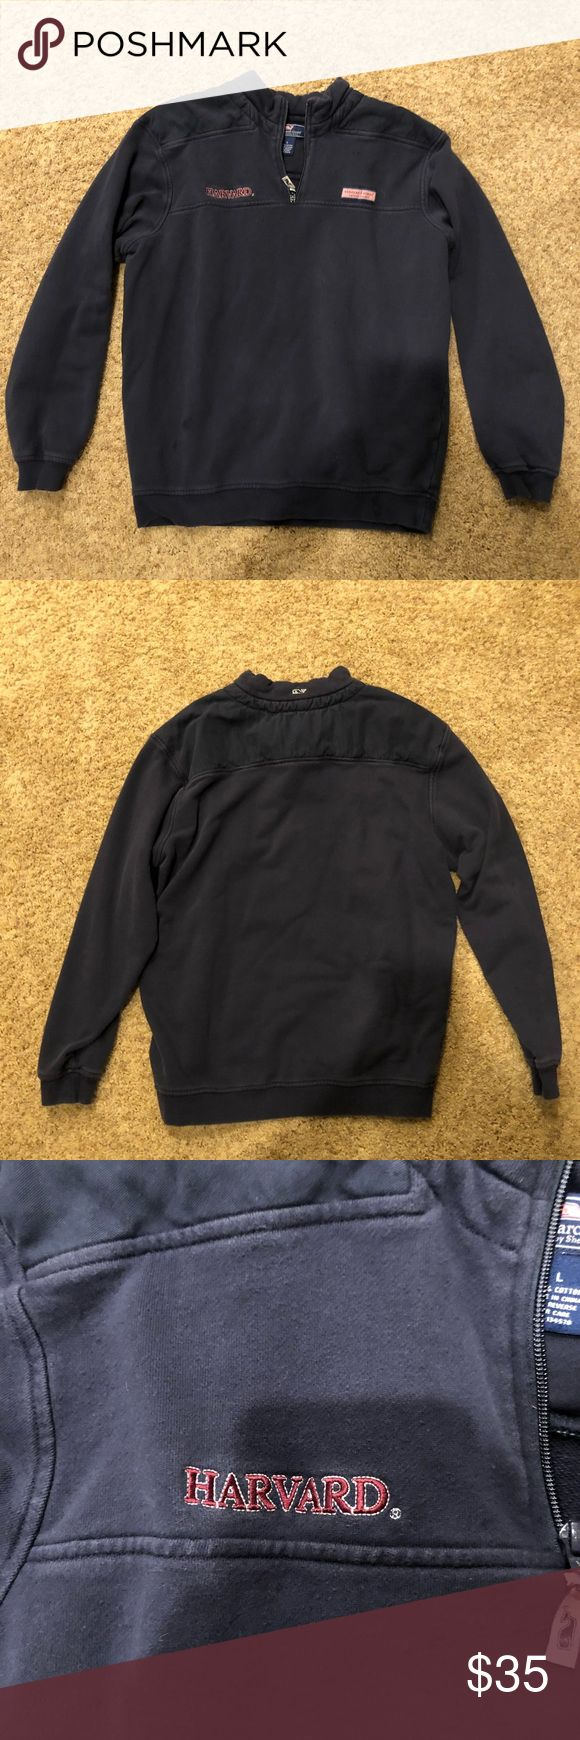 Vineyard Vines Sweatshirt Navy blue vineyard vines sweatshirt. Has a harvard logo because I bought it at the Harvard gift shop. Vineyard vine logo is on the front. It is a large. It works for both a men's and a women's jacket. Vineyard Vines Jackets & Coats